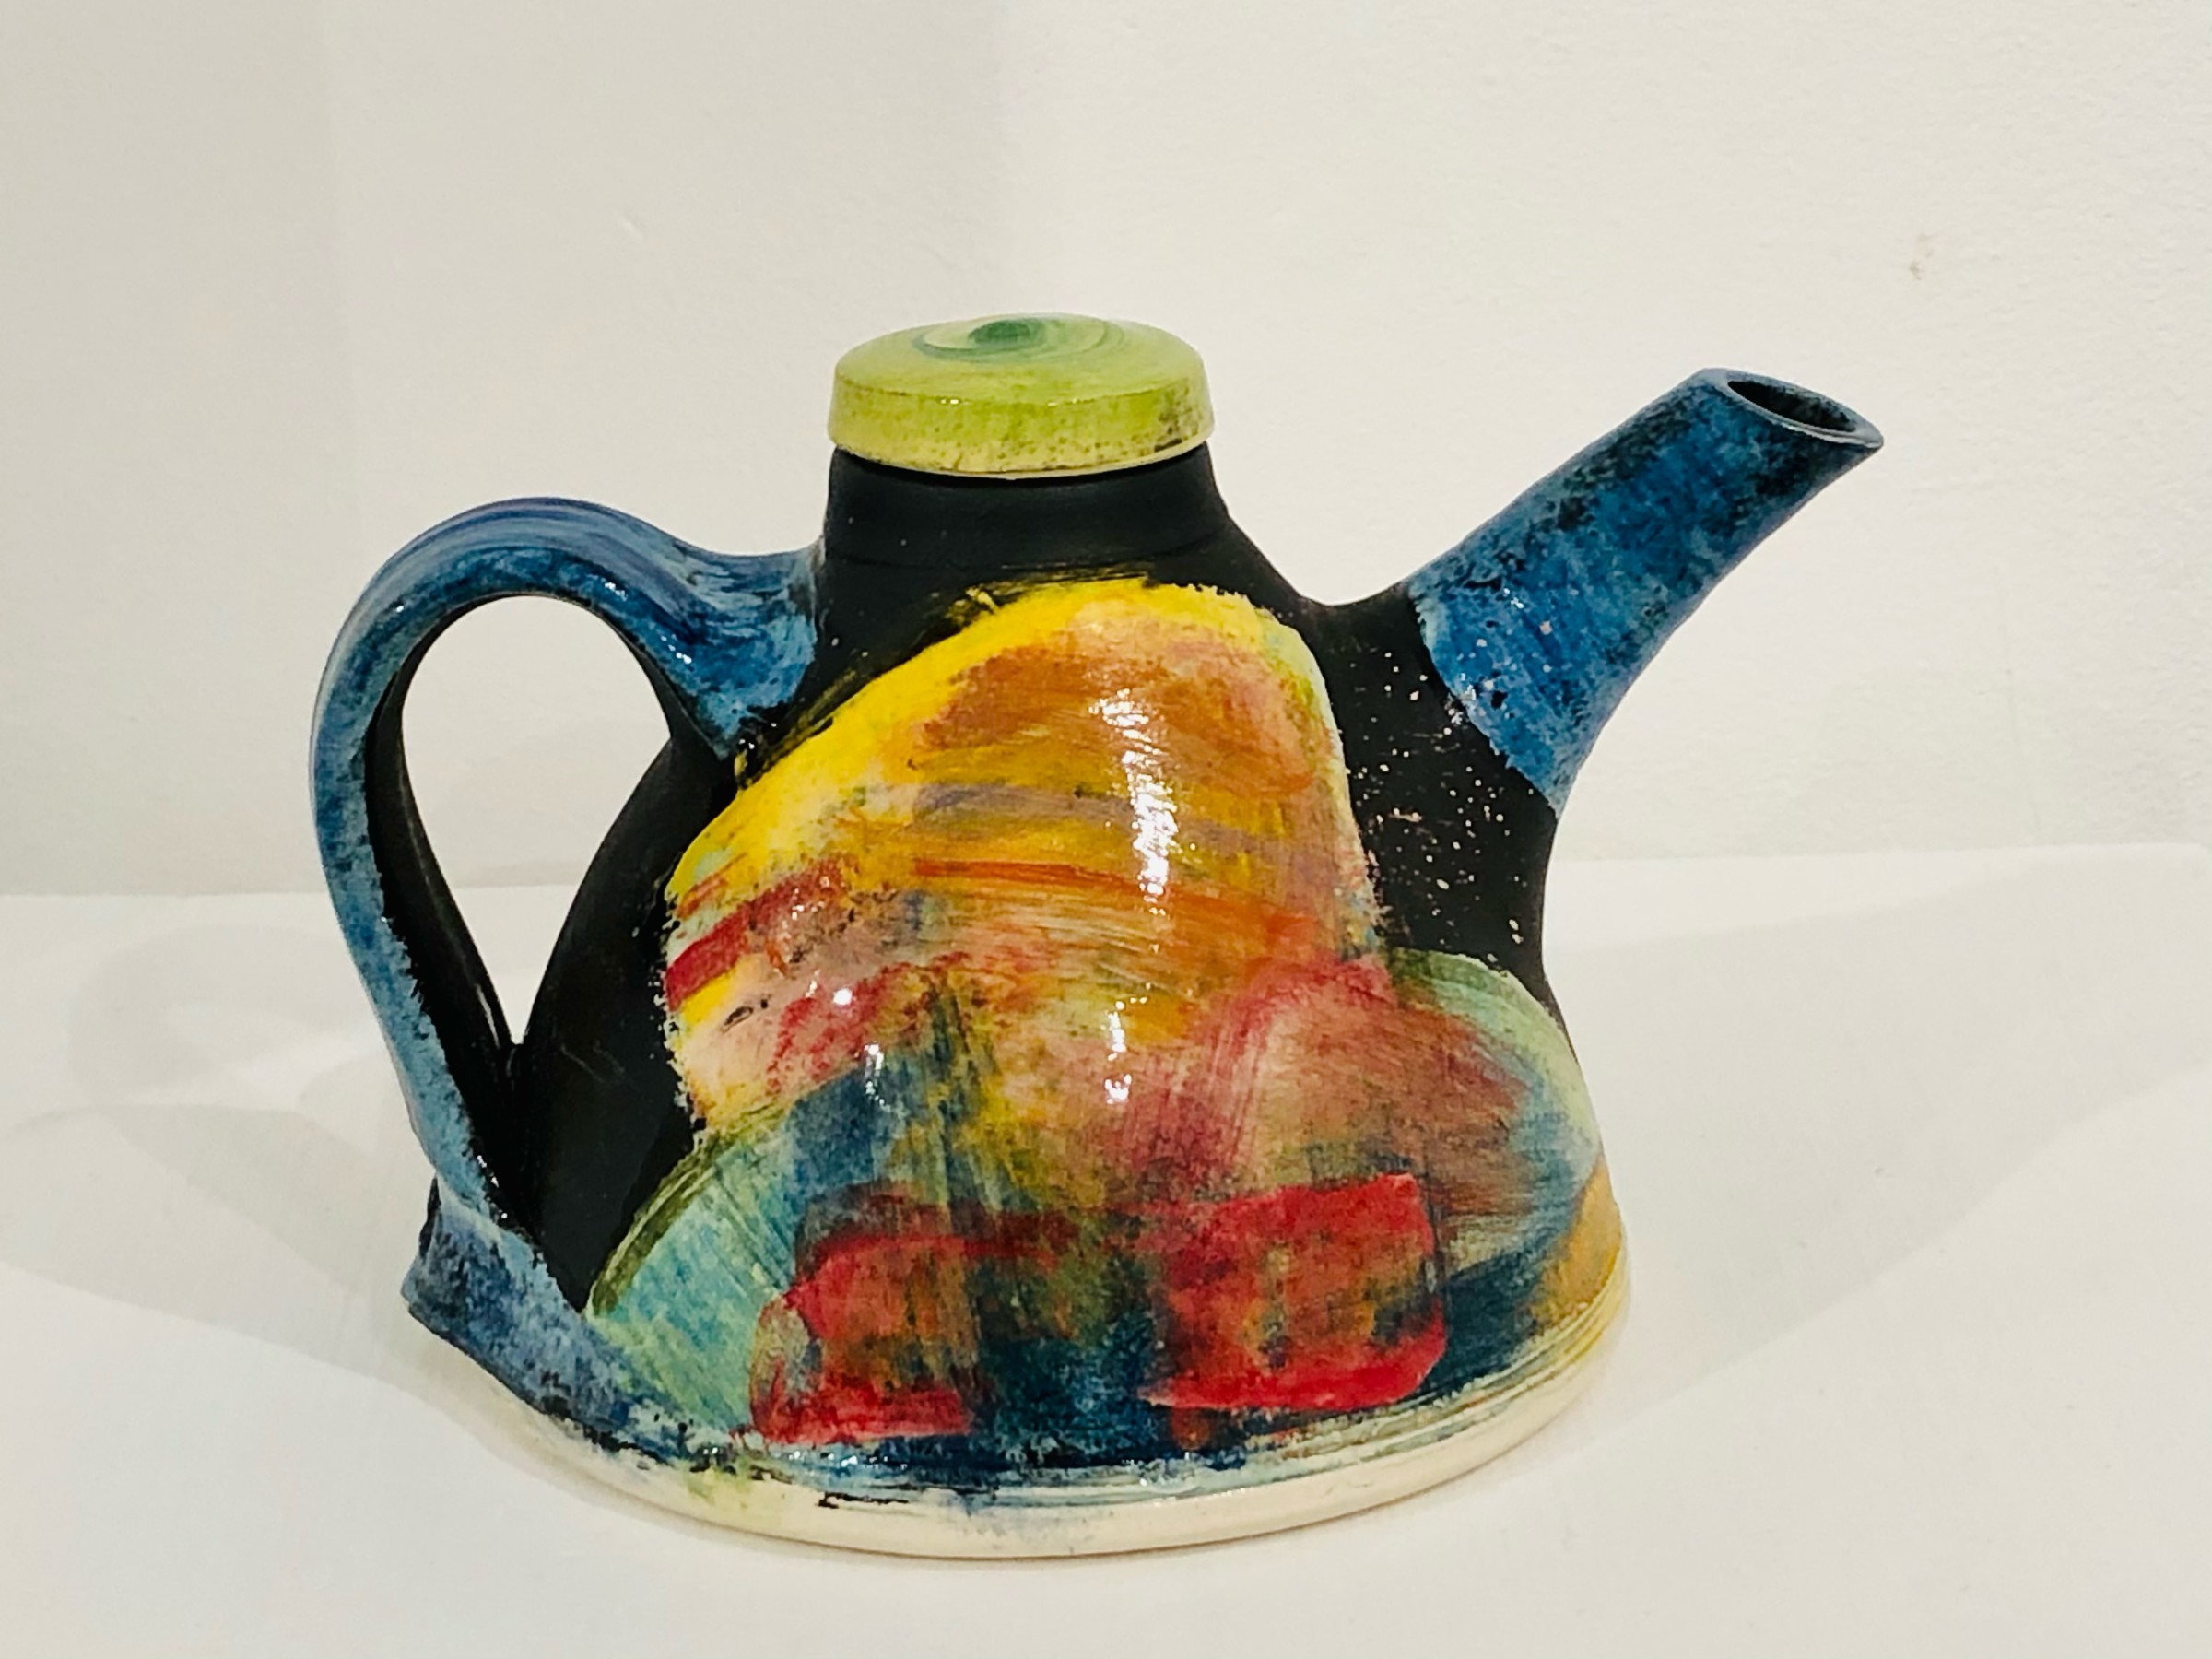 "<span class=""link fancybox-details-link""><a href=""/artists/100-john-pollex/works/7417-john-pollex-teapot-2020/"">View Detail Page</a></span><div class=""artist""><strong>John Pollex</strong></div> b. 1941 <div class=""title""><em>Teapot</em>, 2020</div> <div class=""signed_and_dated"">impressed with the artist's seal mark 'JP'</div> <div class=""medium"">white earthenware decorated with coloured slips</div><div class=""price"">£220.00</div><div class=""copyright_line"">£22 x 10 month 0% APR</div>"